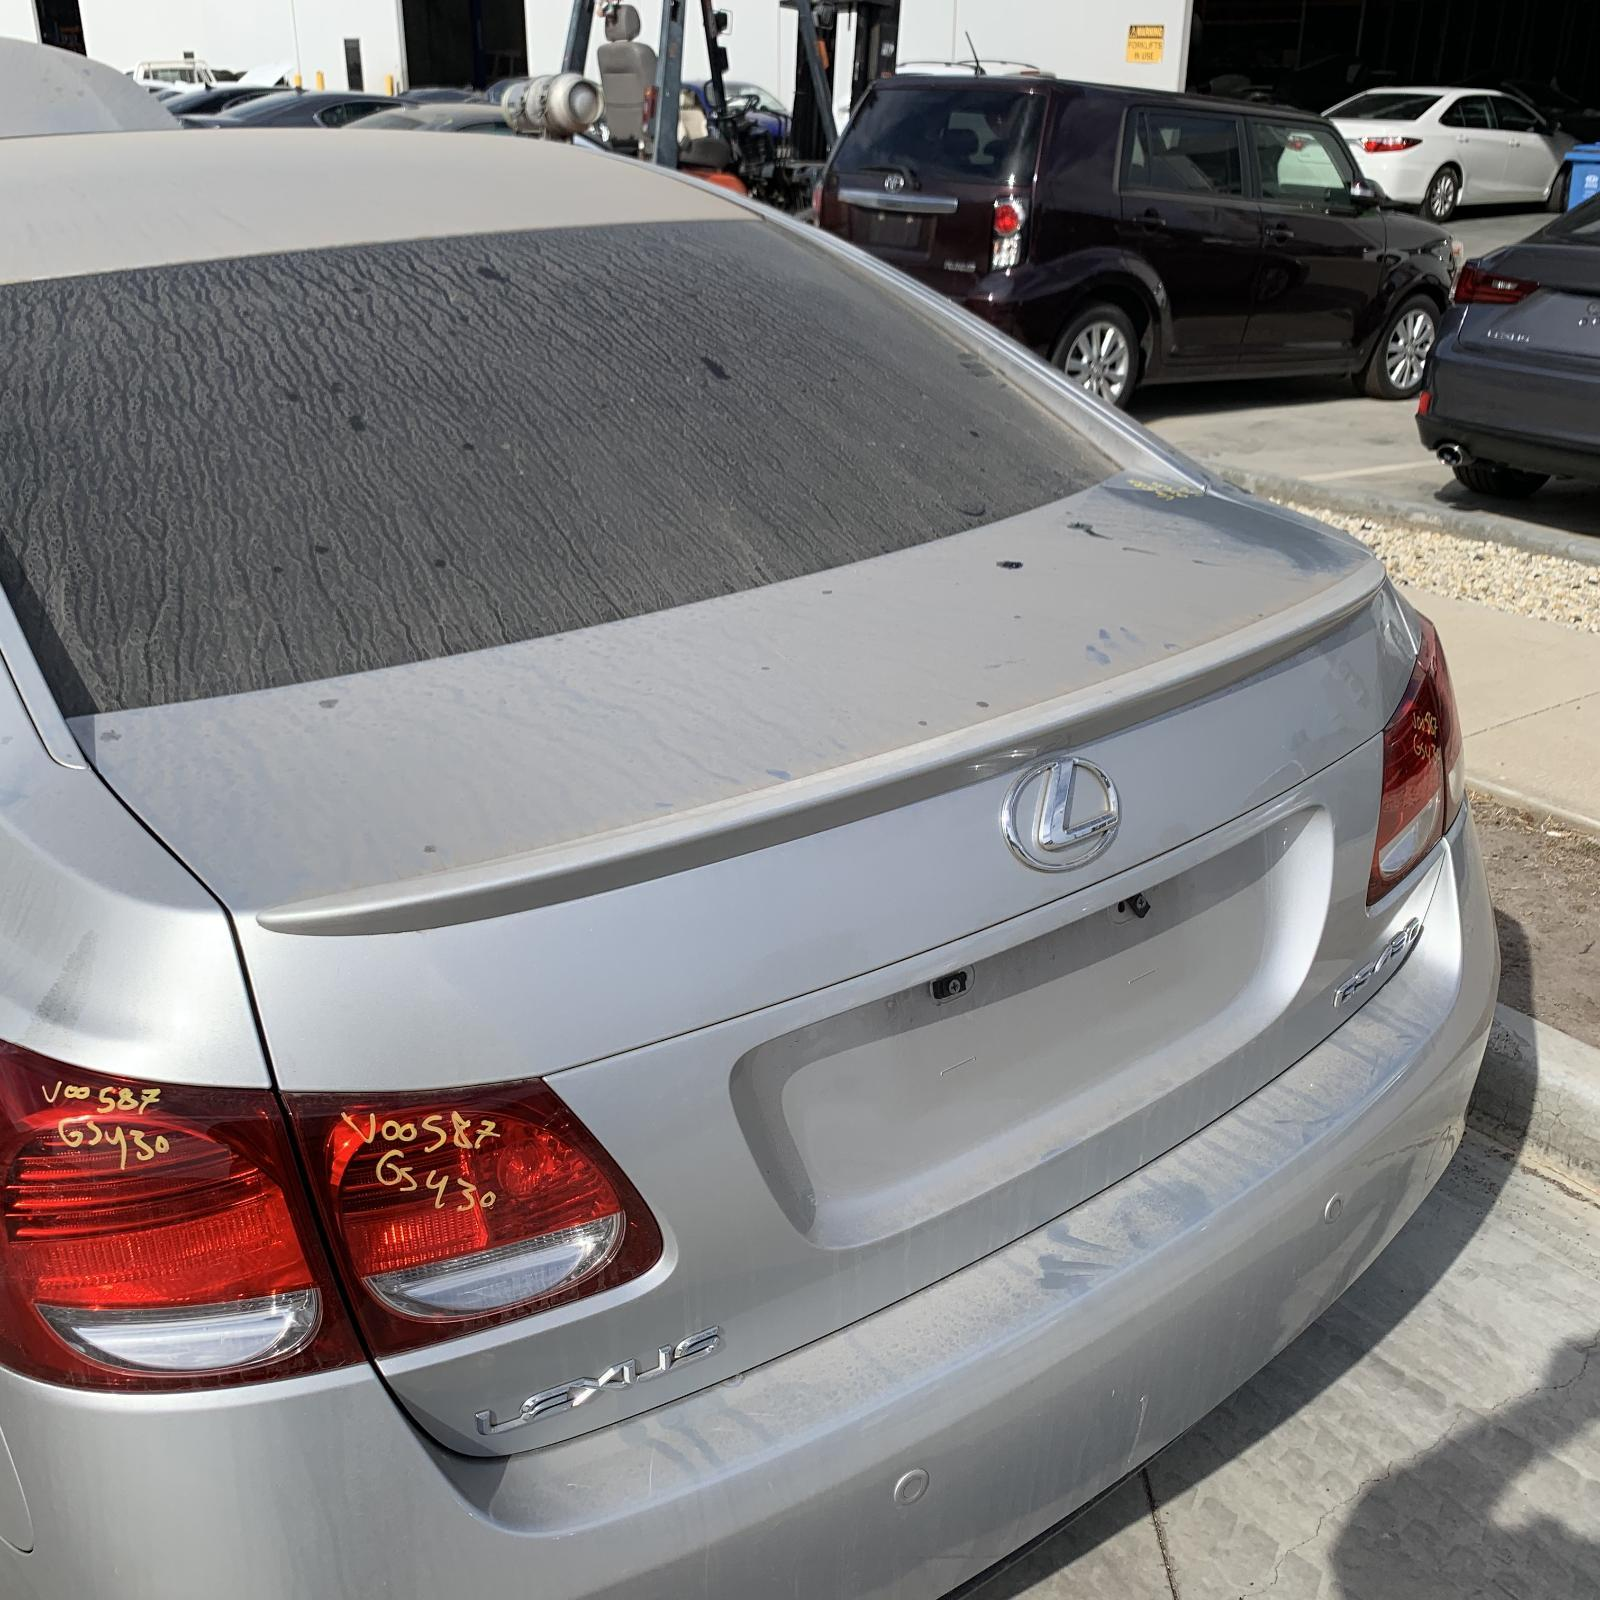 LEXUS GS, Bootlid/Tailgate, BOOTLID, 190 SERIES, SPOILERED TYPE, W/ CAMERA, 03/05-12/11